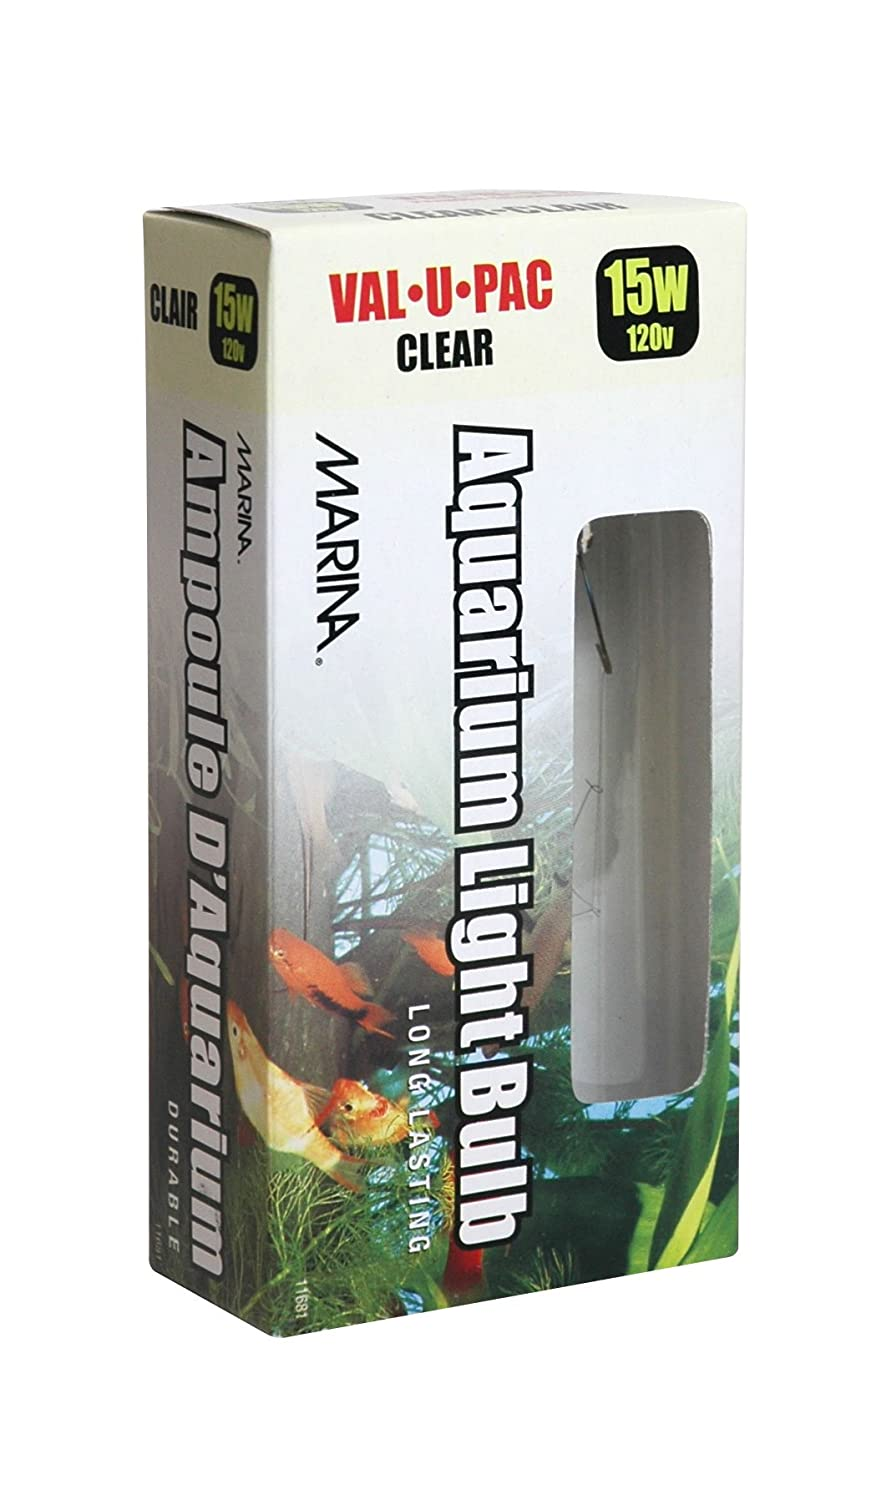 Fish tank lights for sale - Marina 15 Watt Clear Showcase Bulb 2 Pack